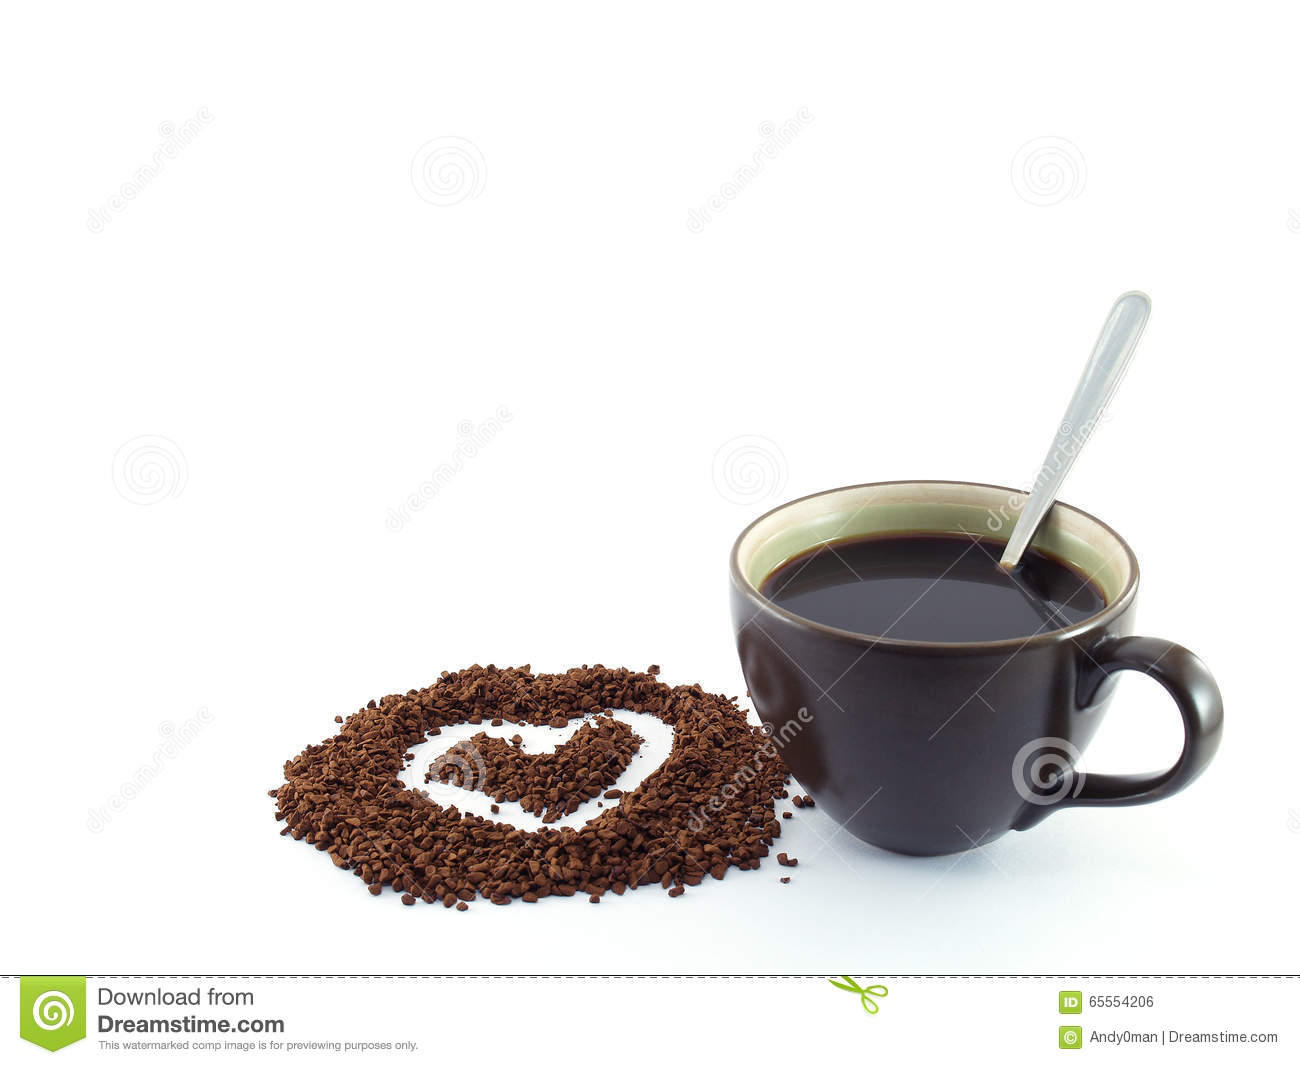 heart shape drawing on soluble instant coffee powder and black coffee with silver tea spoon in dark brown ceramic cup